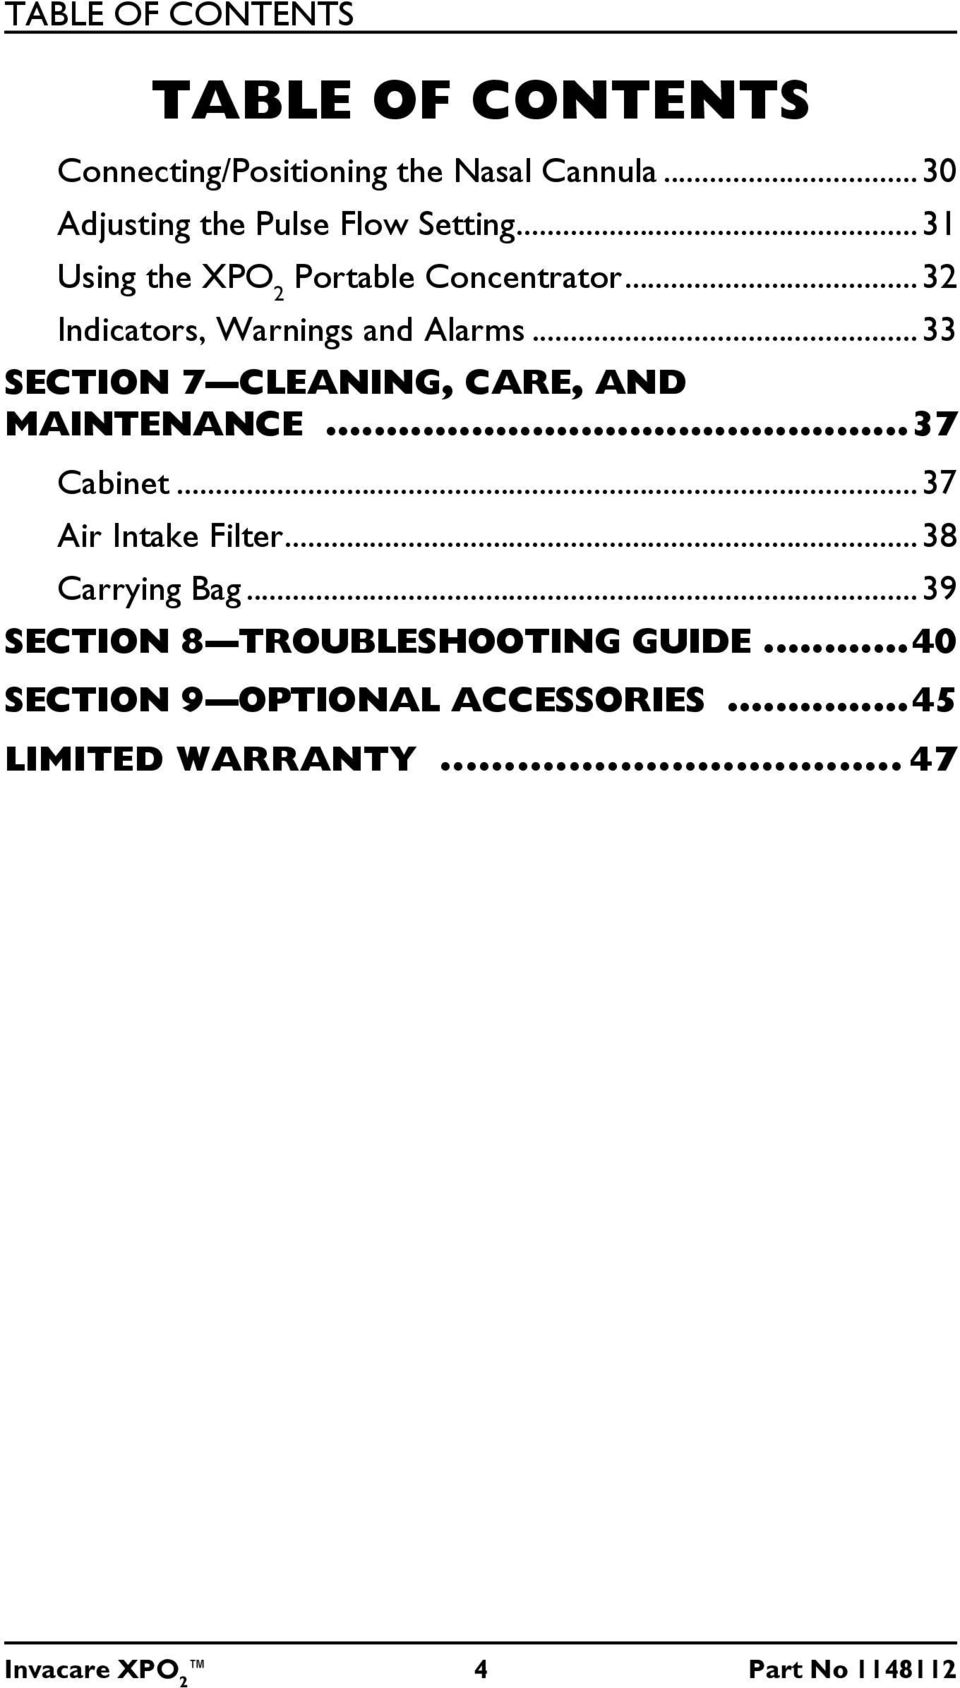 xpo2 repair manual